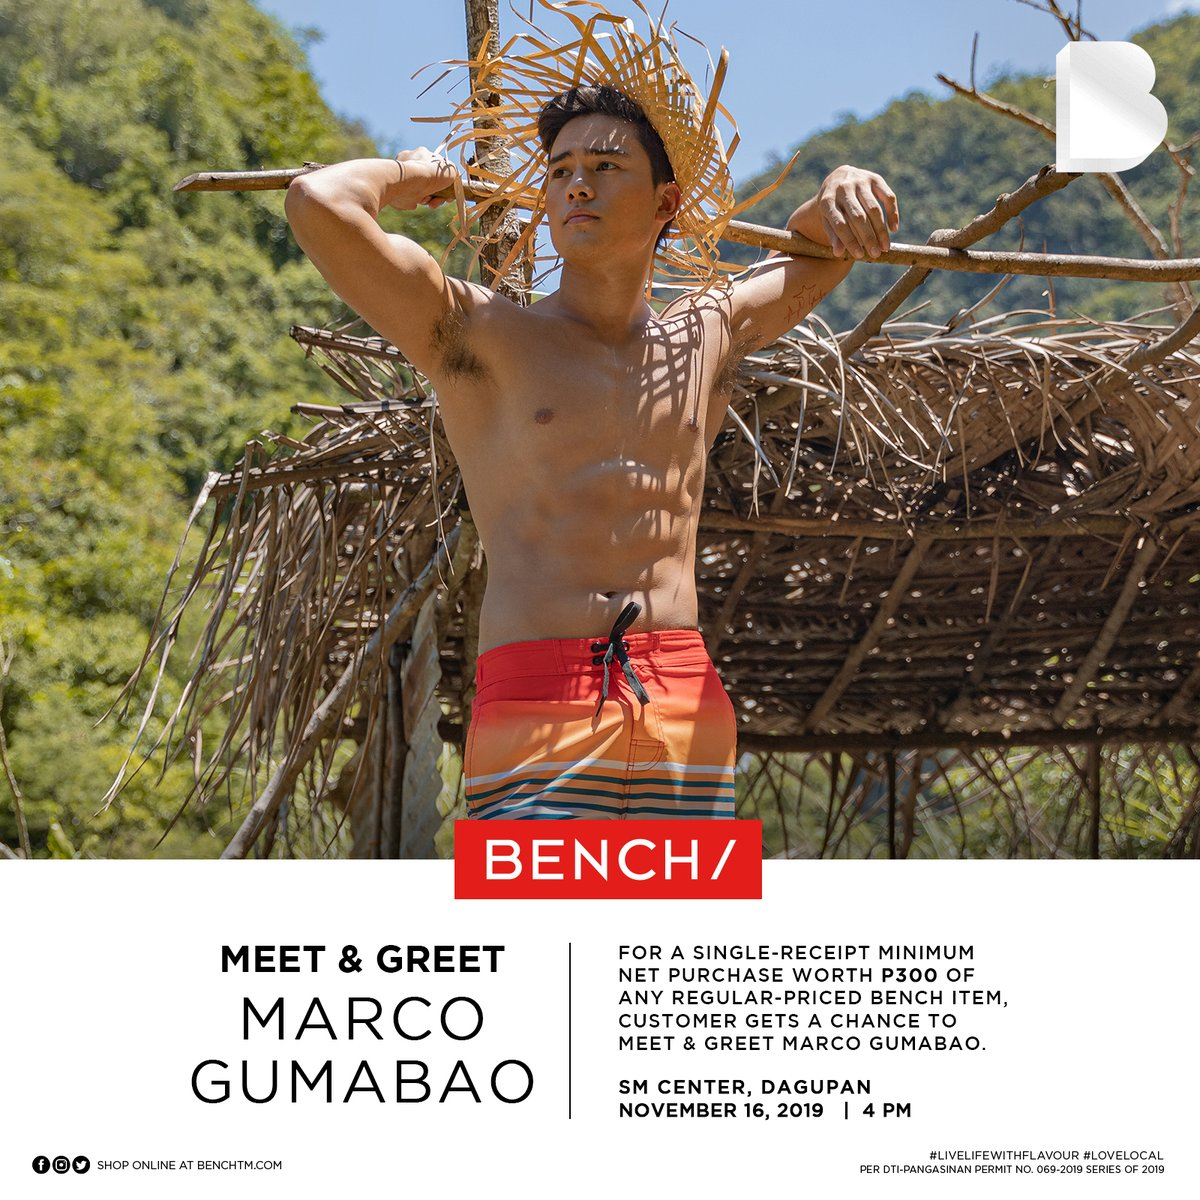 What's up, Dagupan! 📣 @marcogumabao is coming to visit you! 🎉 Catch him tomorrow, November 16, 2019 at SM Center Dagupan at 4pm! See you there 😜 #BENCHEveryday